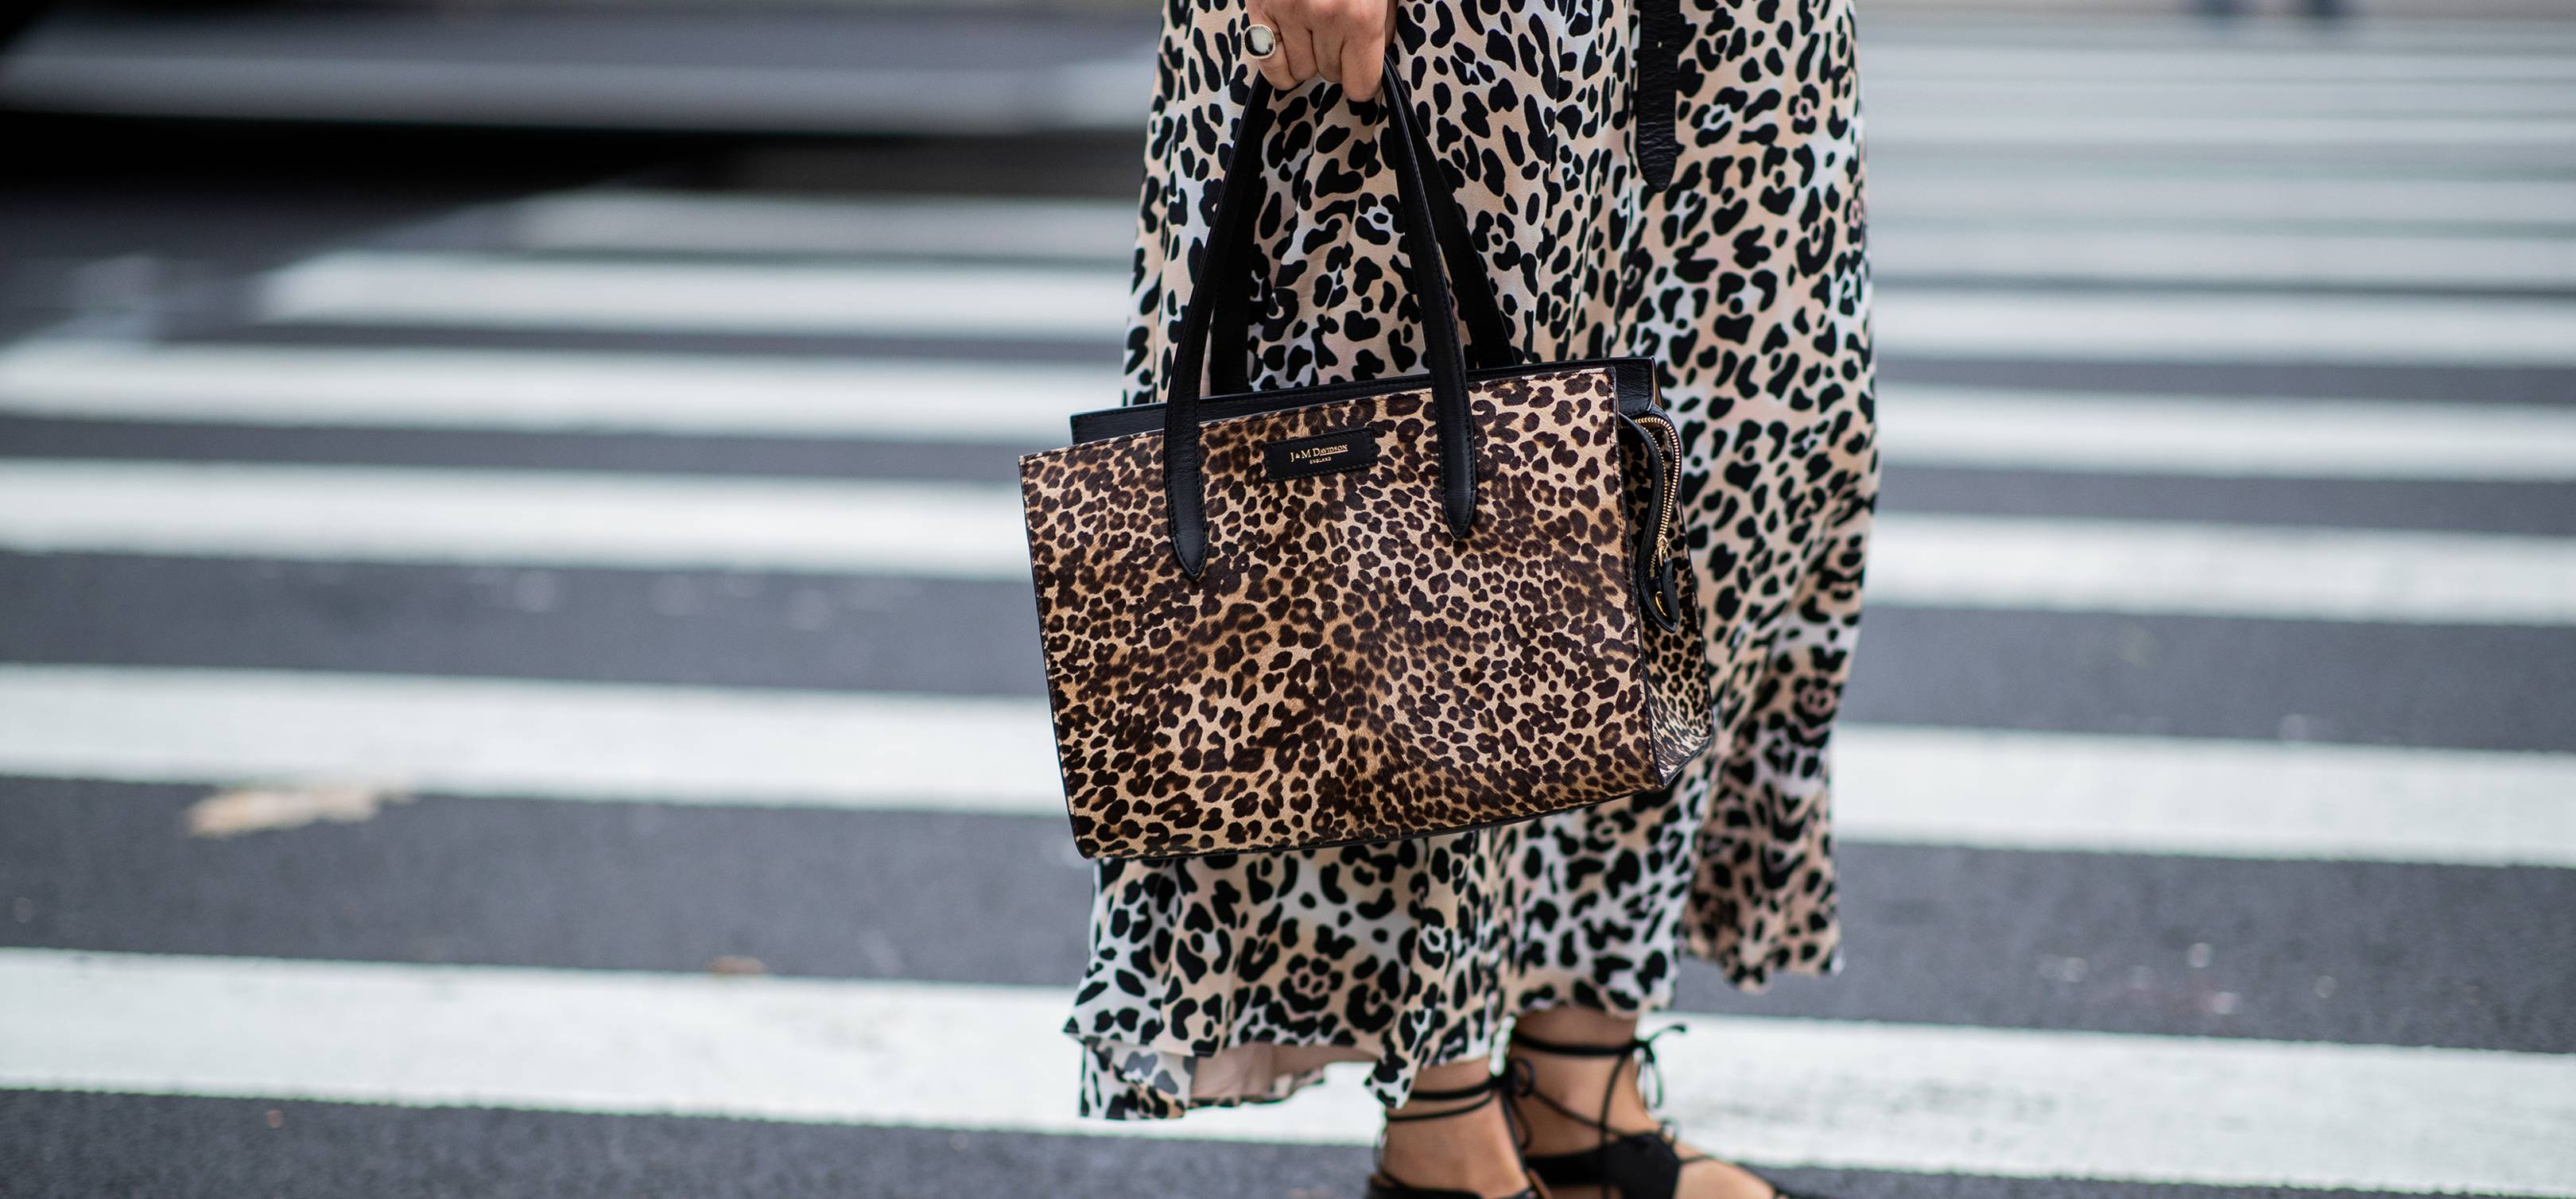 971c01b4c705 The best Christmas gifts if you're absolutely obsessed with animal print